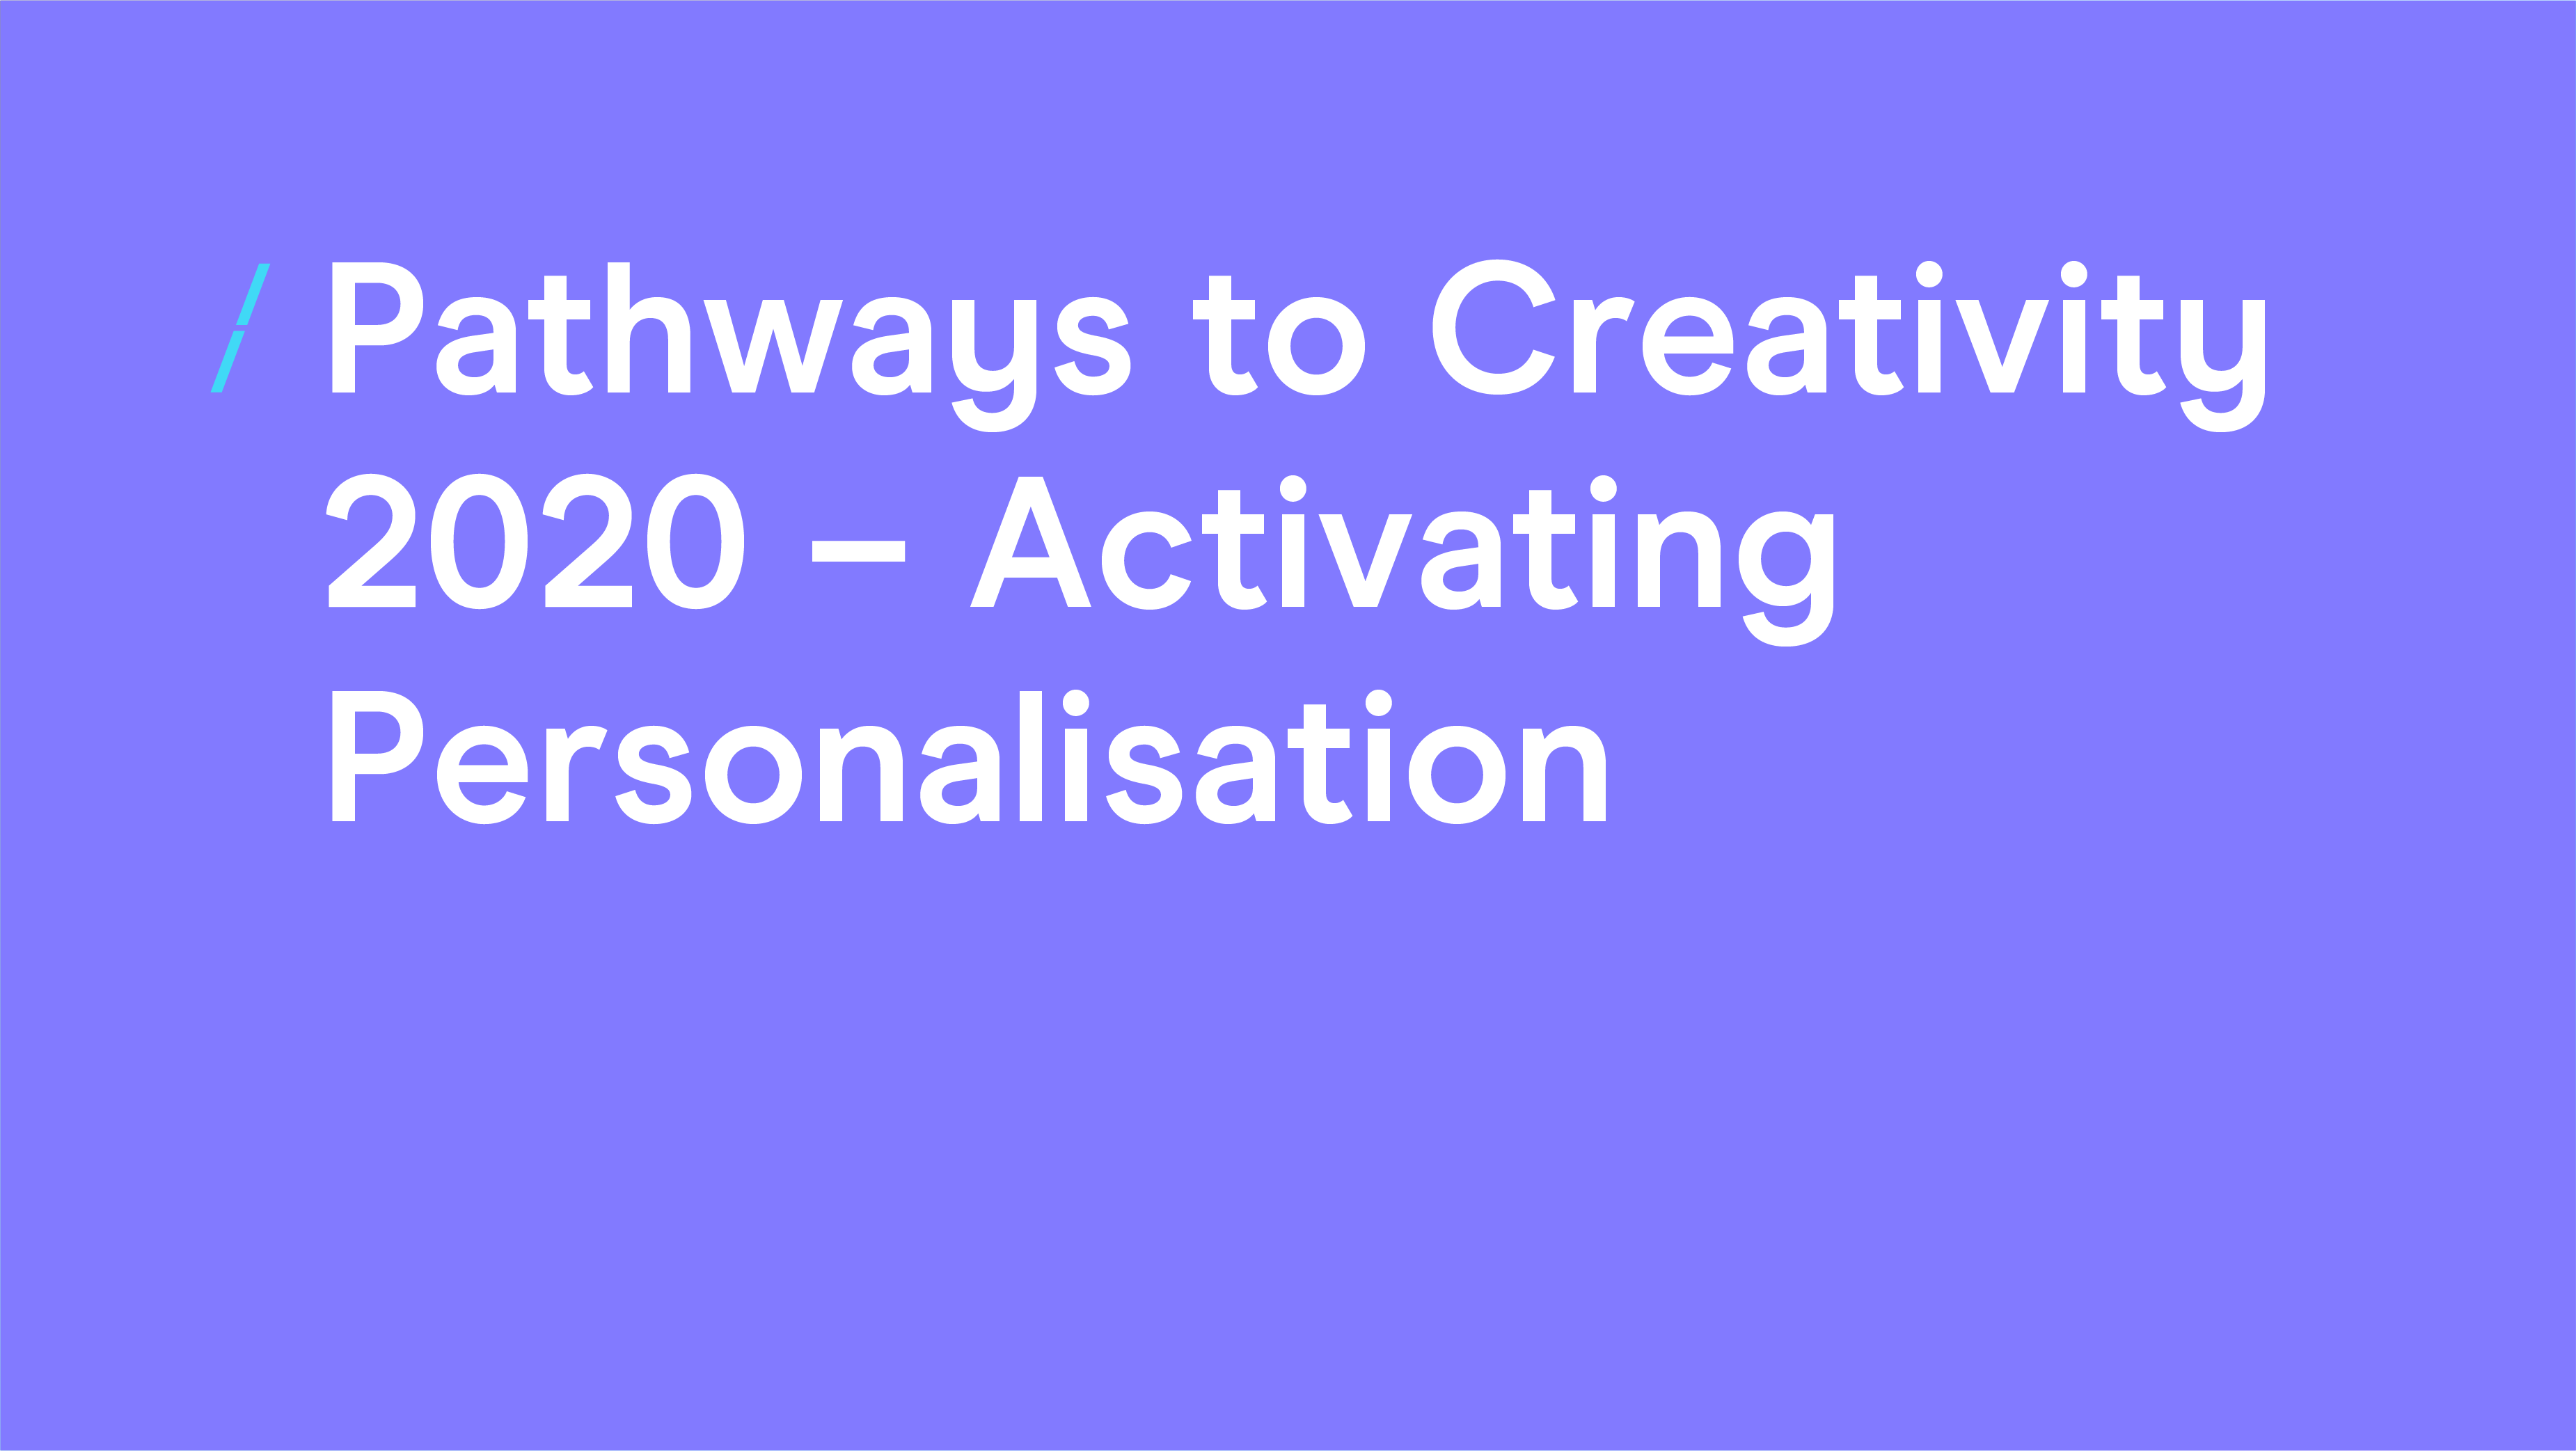 Pathways to Creativity 2020 - Activating Personalisation.png